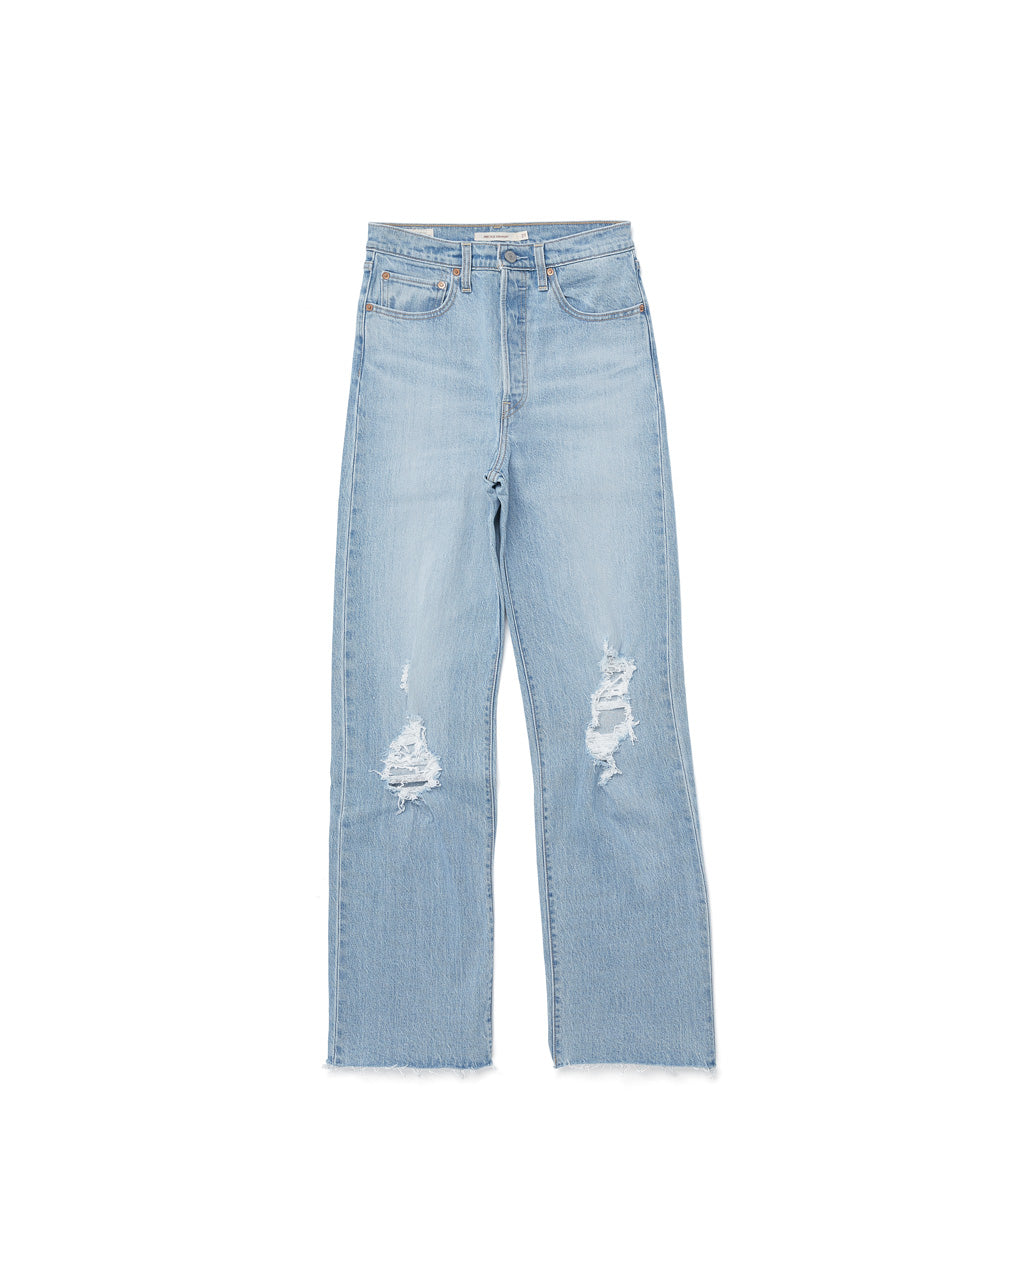 Super high rise, slightly distressed light wash denim.